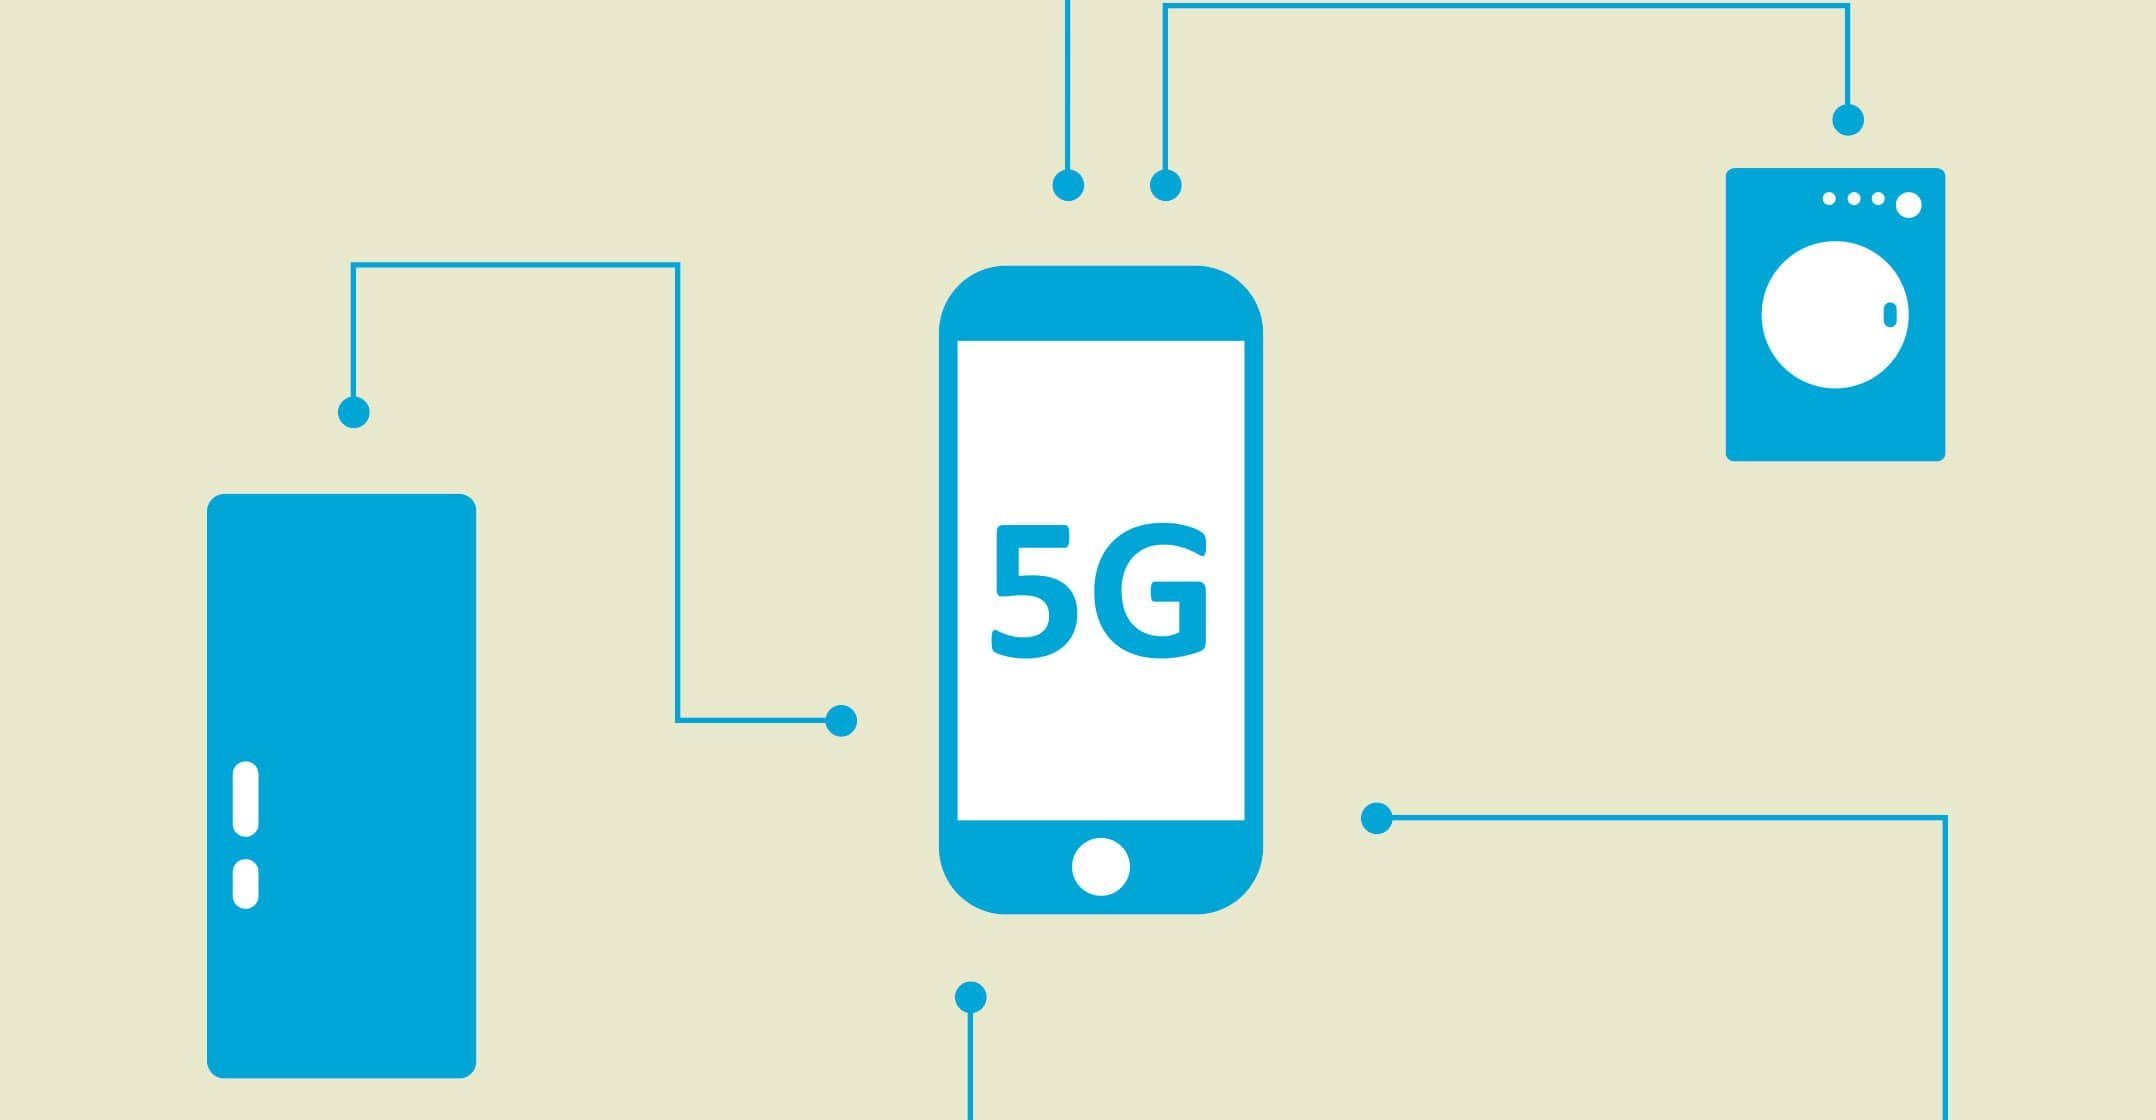 5G In Australia will be a revolution not an evolution.